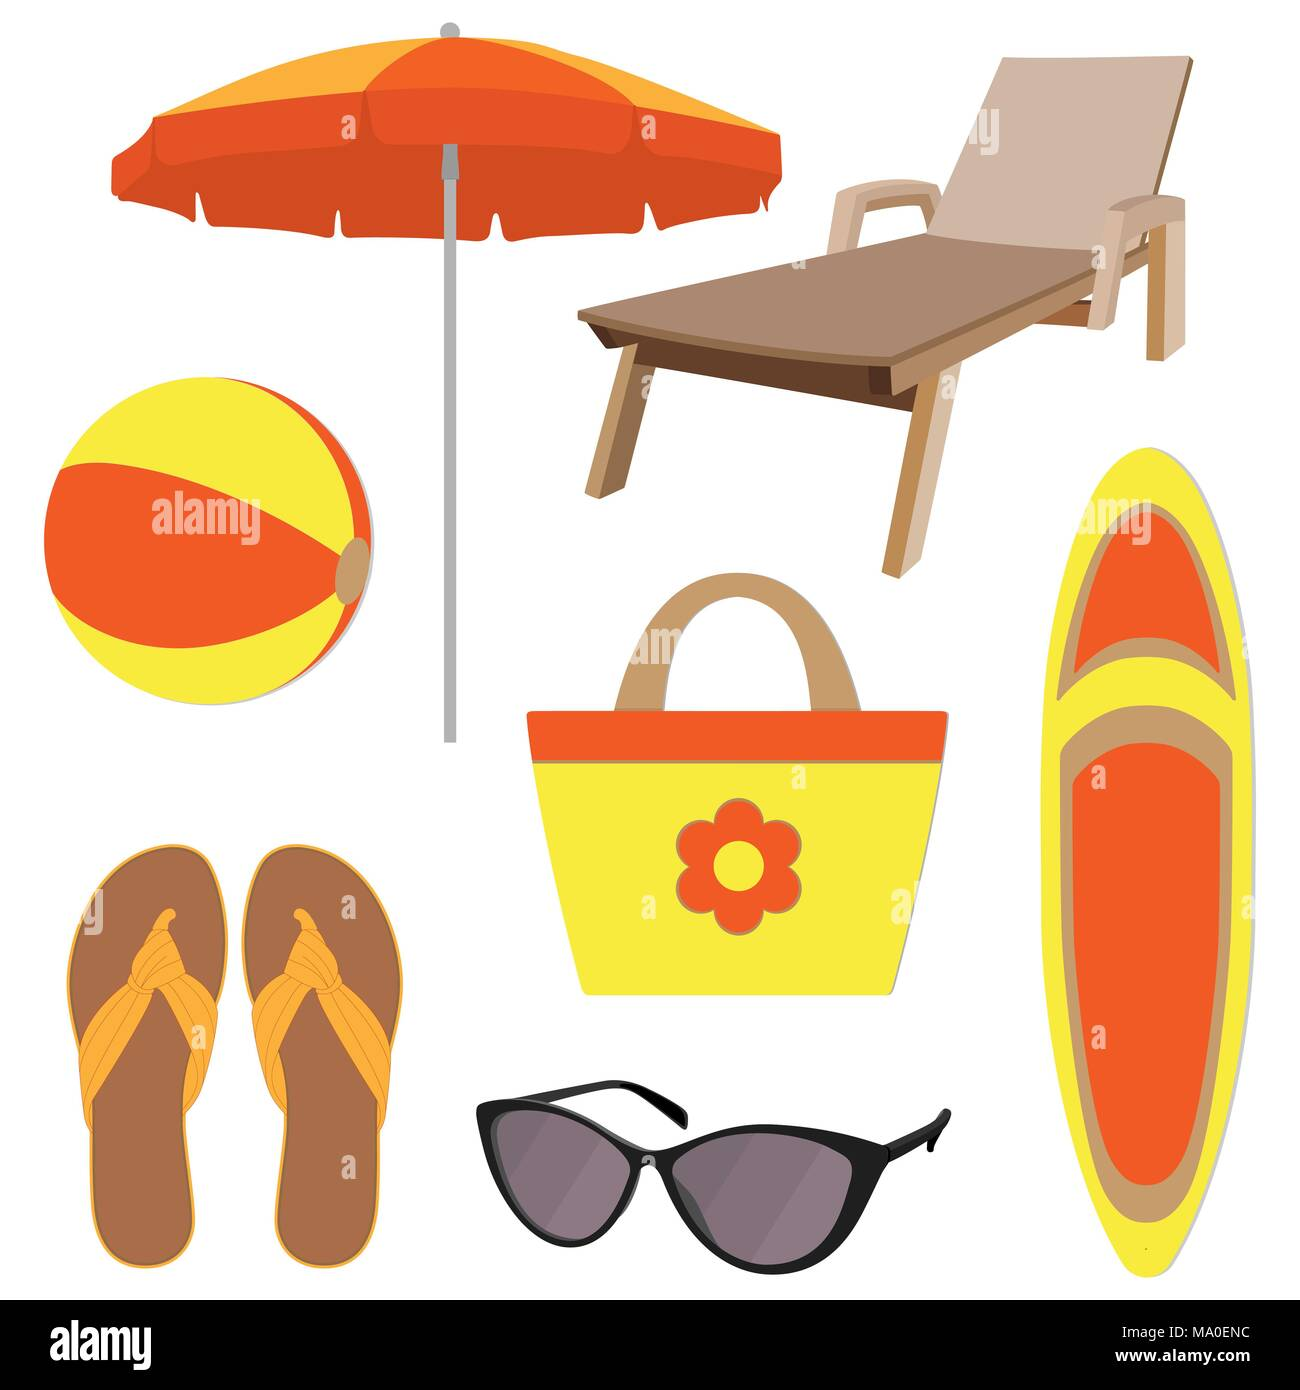 Summer vacation accessories in flat style, set. Chaise longue, slippers, sun glasses, sun umbrella, inflatable ball, beach bag, surfboard. Colorful ab - Stock Vector